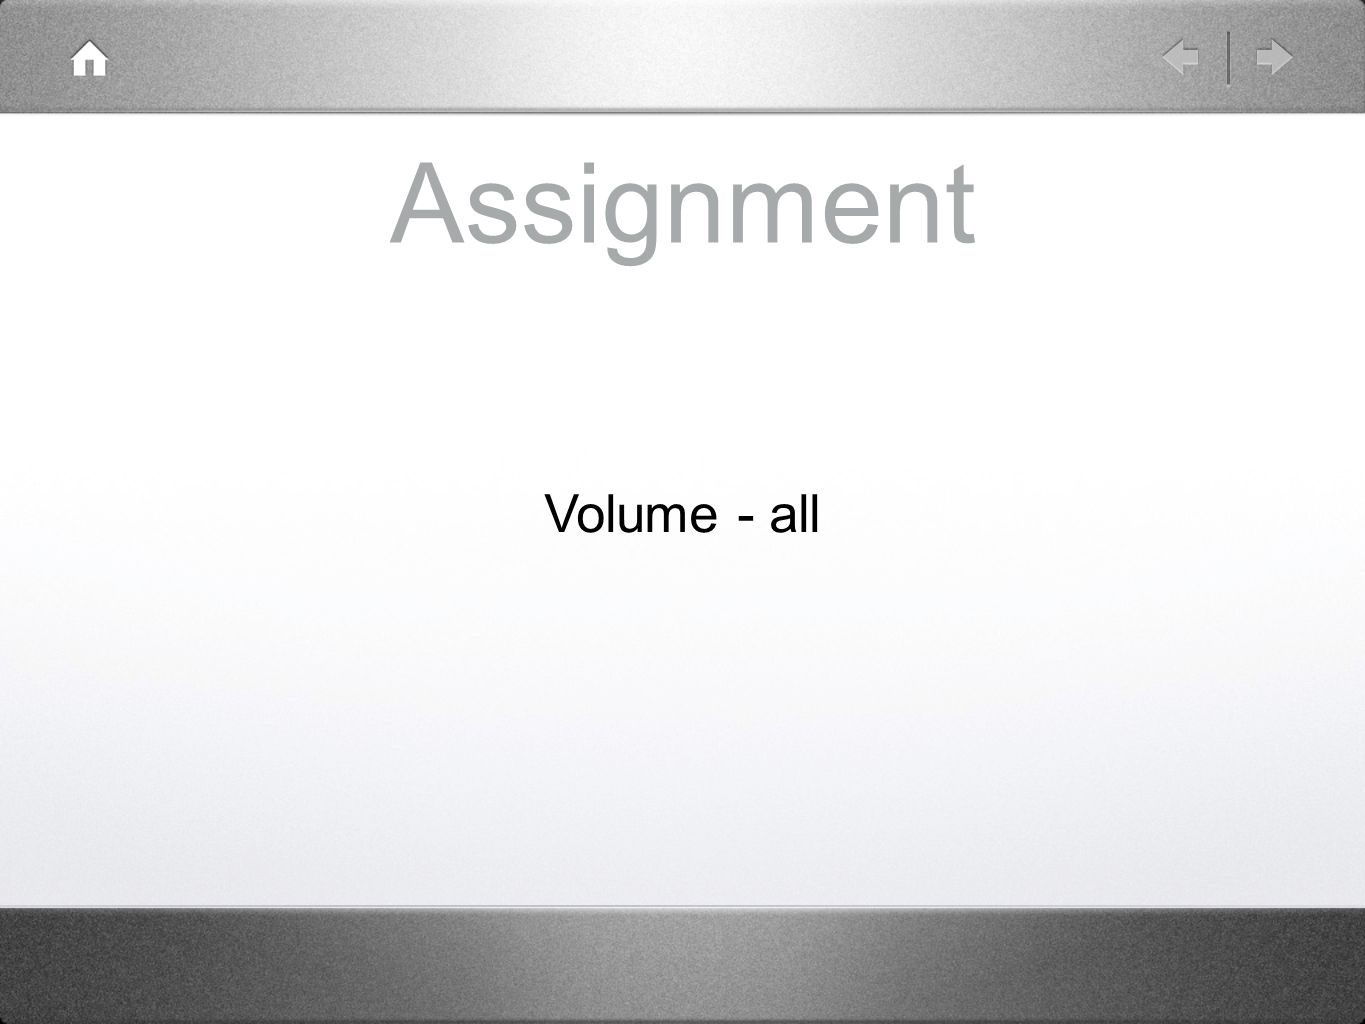 Assignment Volume - all